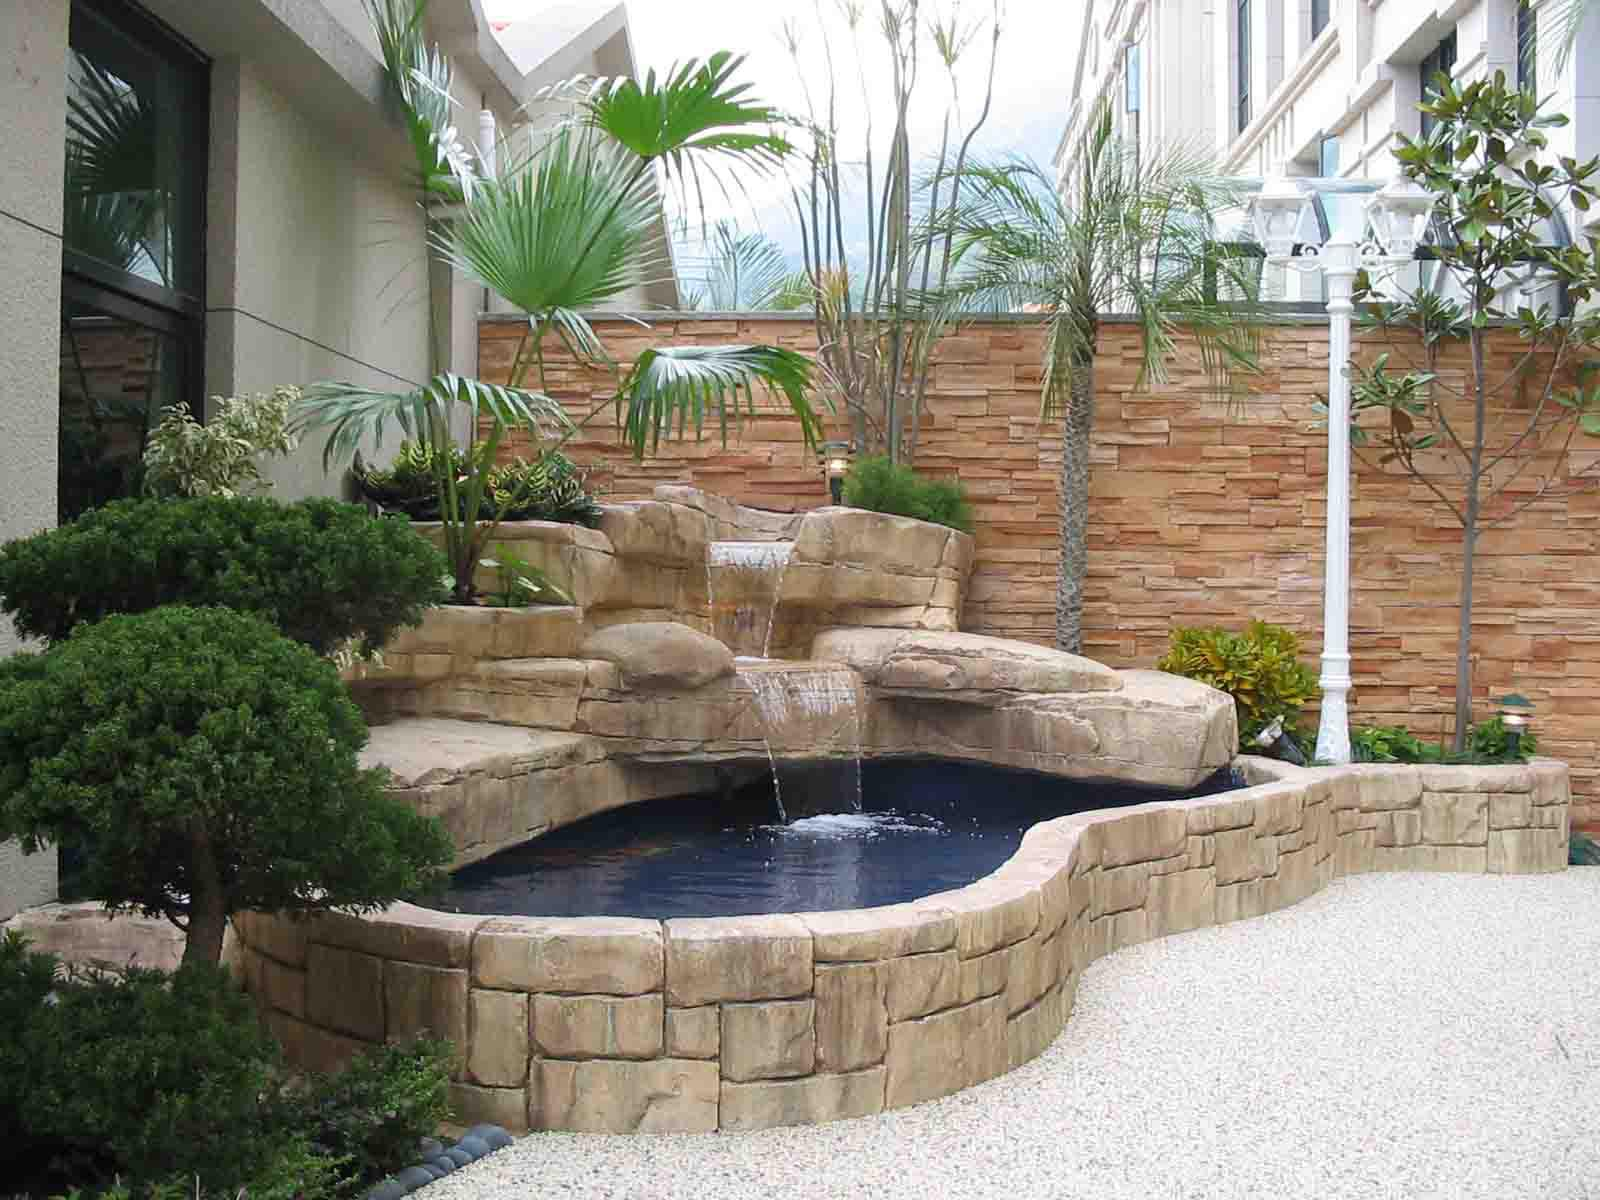 Pond Garden Design Design Fish Pond Garden Design  Backyard Design Ideas